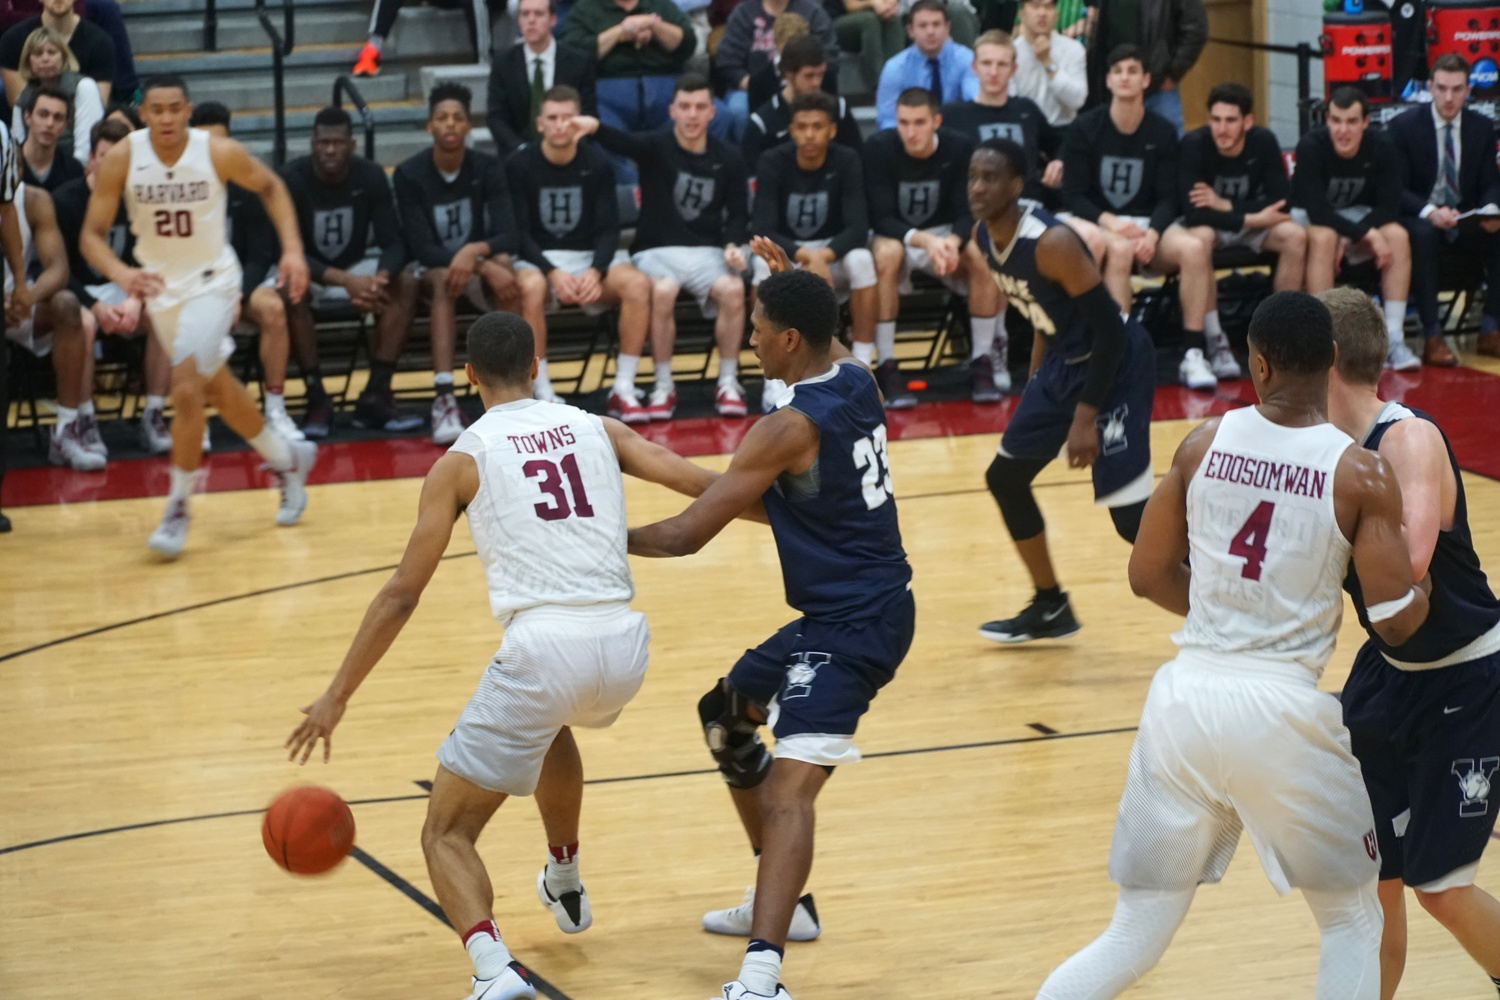 After losing a heartbreaker to Tigers at home the last time around, the Crimson is looking to avenge the loss Friday night on the road. A sweep of the weekend would keep Harvard's hopes of a first place finish in conference alive, while Penn takes on the Crimson looking to keep its season alive.